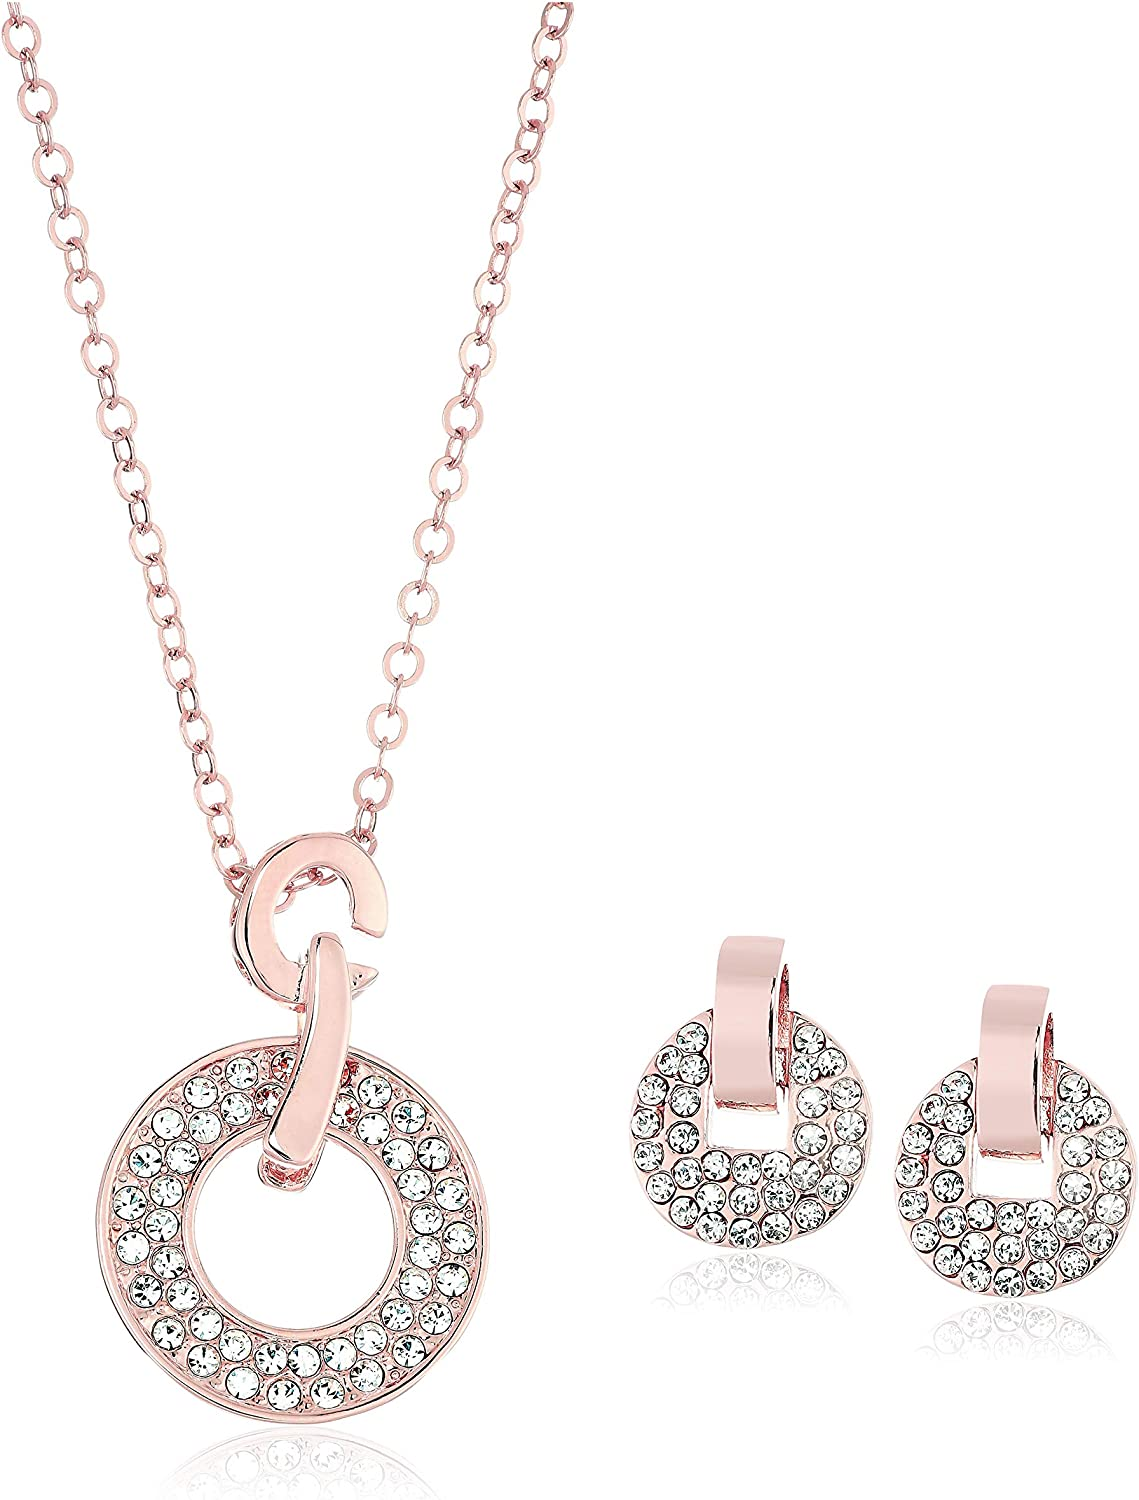 Crystalline Azuria Rose Gold Jewelry: Colorful or White Crystal Necklace and Earrings Set - Costume Jewelry for Women, Wedding Party, Bridal and Bridesmaid Accessories - 18K Rose Gold Plated Pendant and Earring Sets